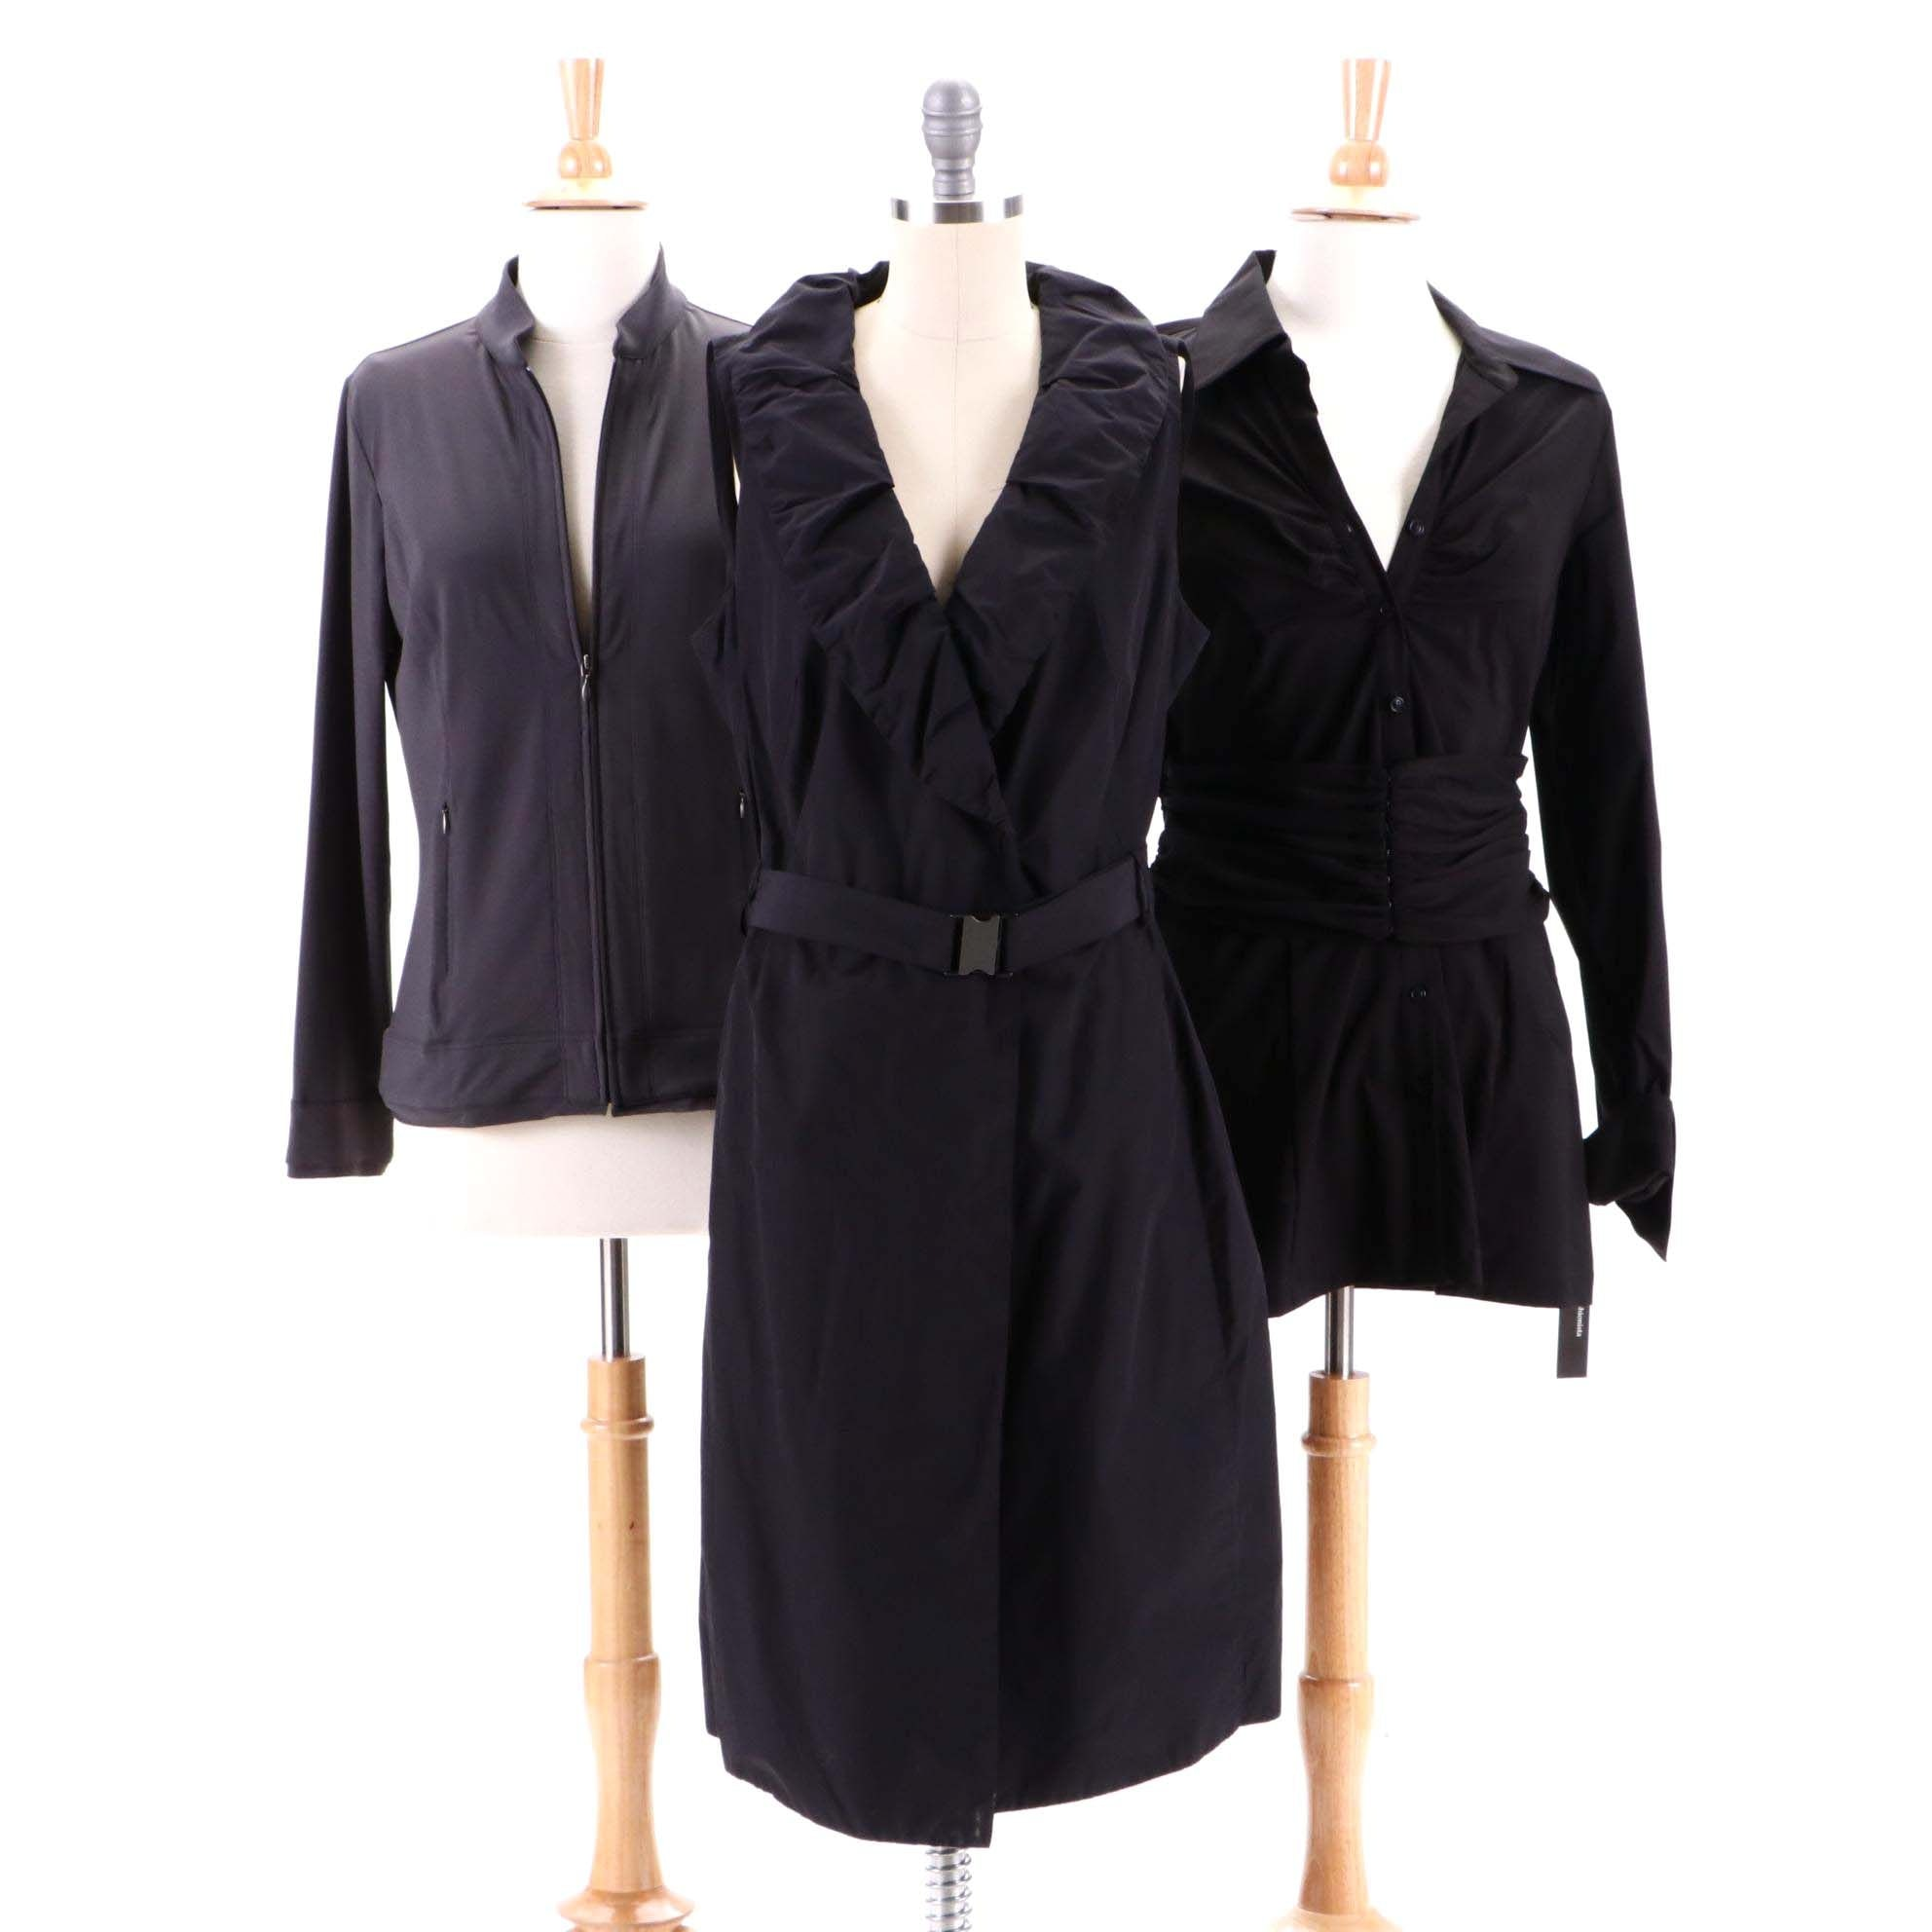 A-K-R-I-S Punto Dress, Cabi Zipper-Front Jacket and Fashionista Ruched Shirt